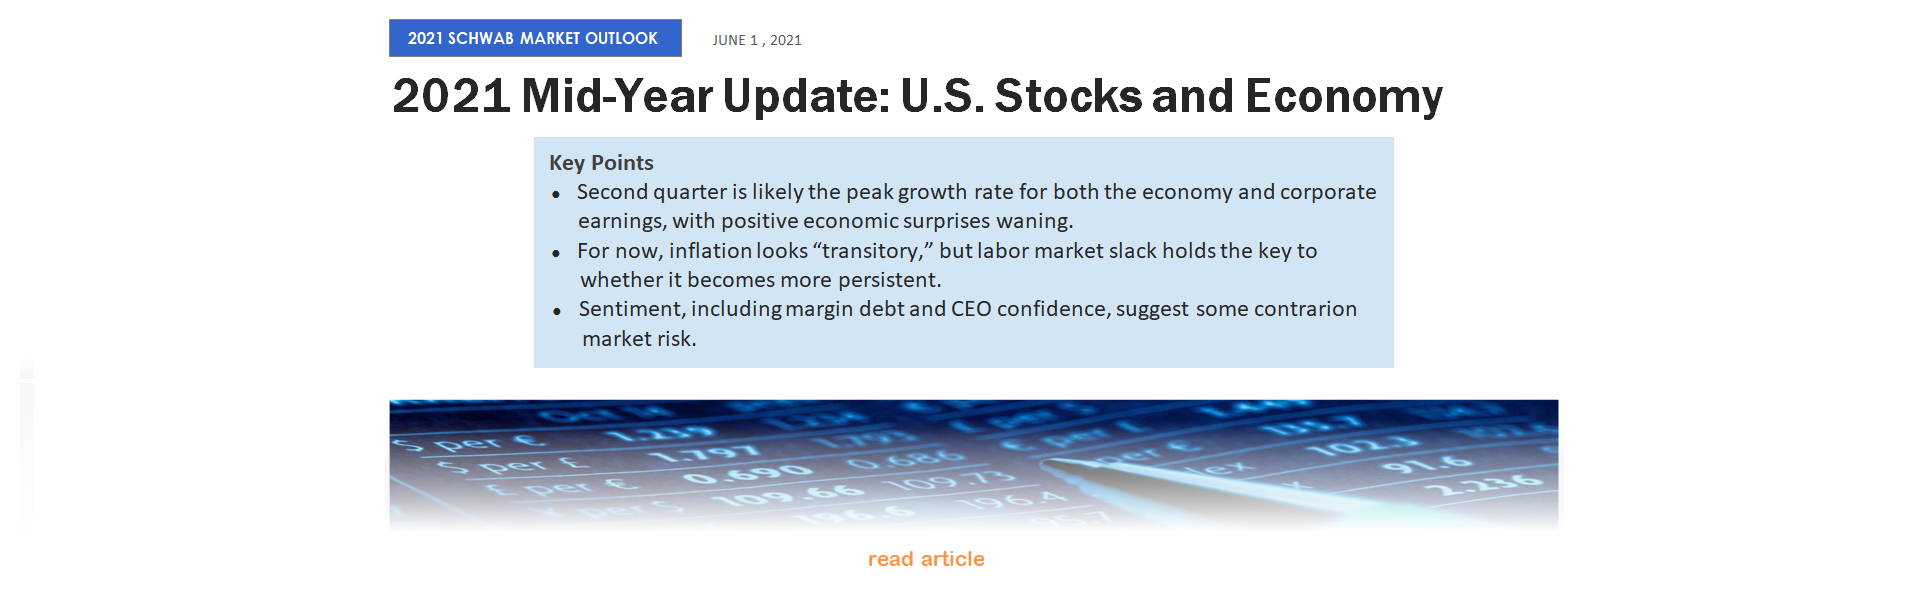 https://www.schwab.com/resource-center/insights/content/2021-mid-year-outlook-us-stocks-and-economy